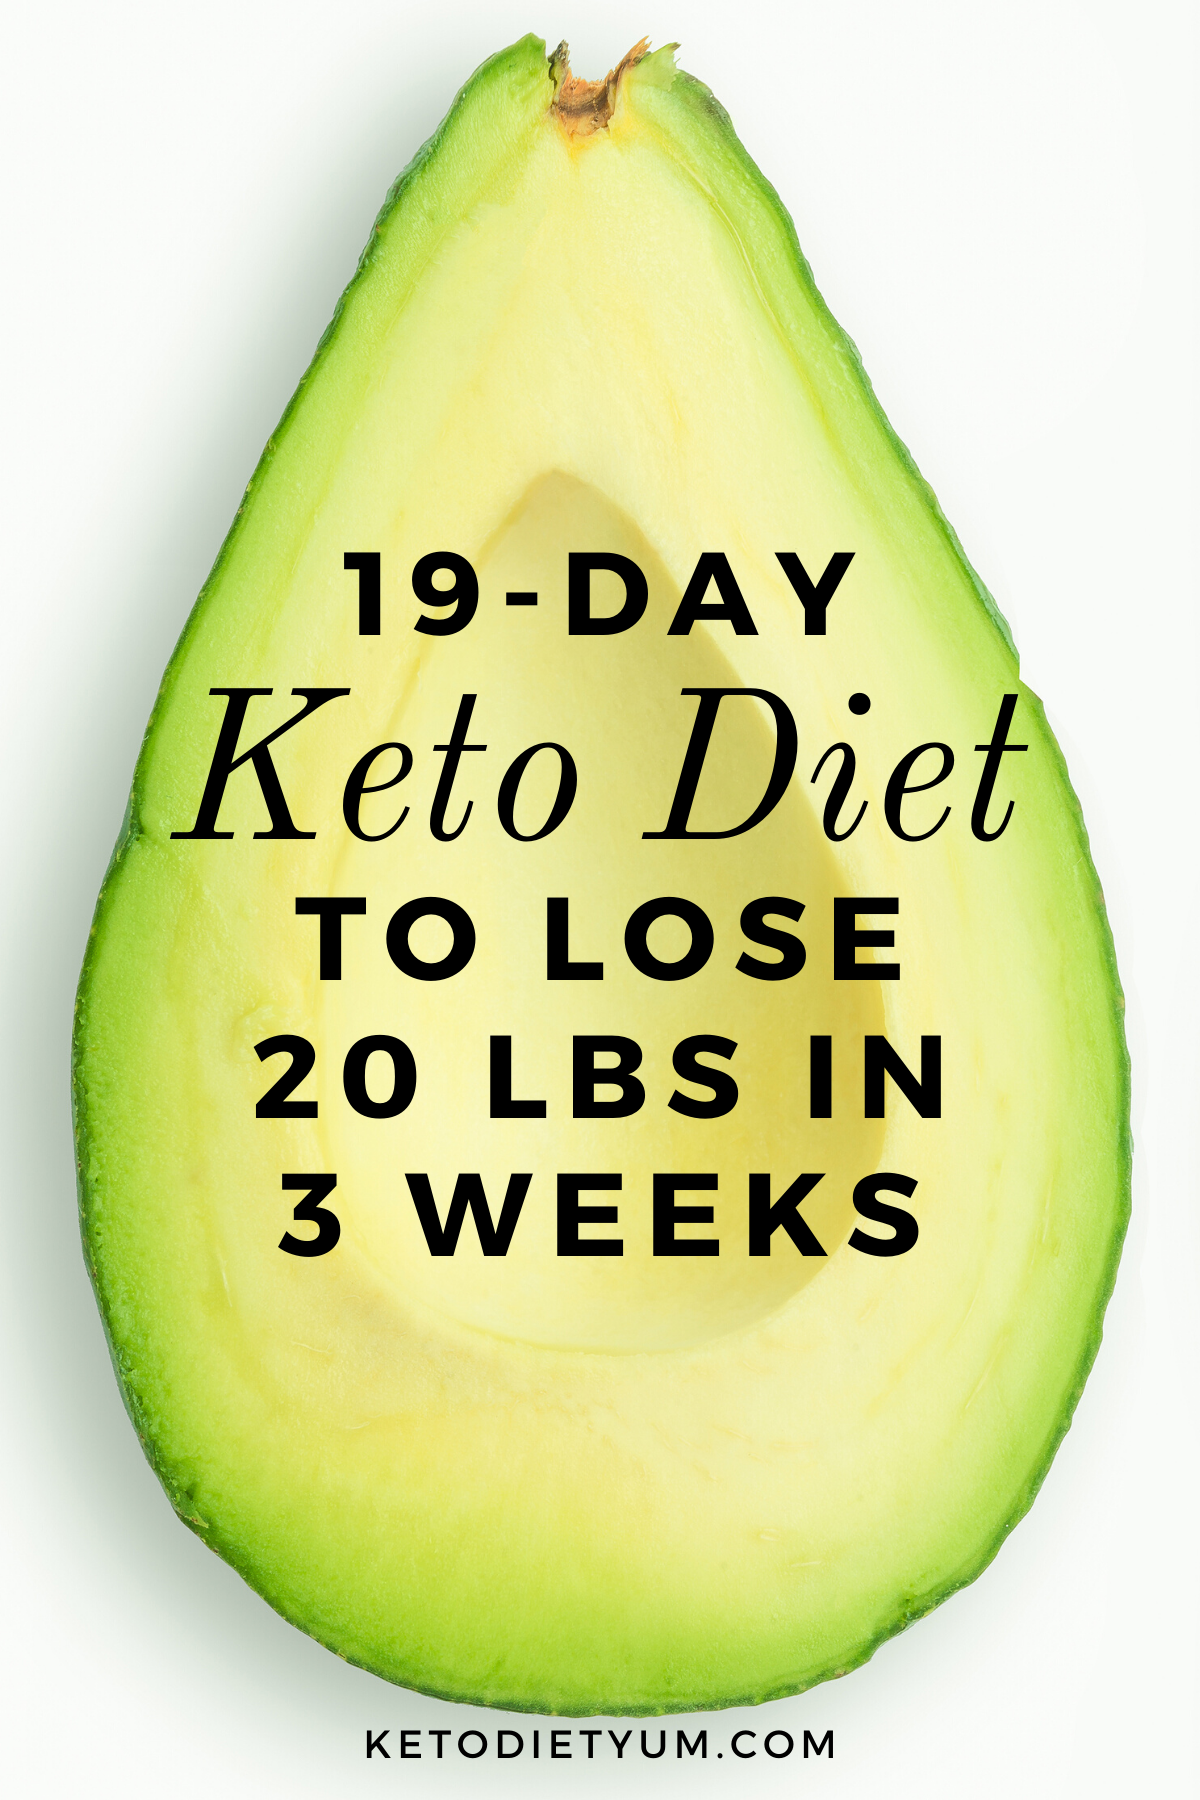 Intermittent fasting combined with keto is a powerful dietary strategy to induce ketosis to burn fat lose weight and boost energy levels Both work in perfect synergy to b...